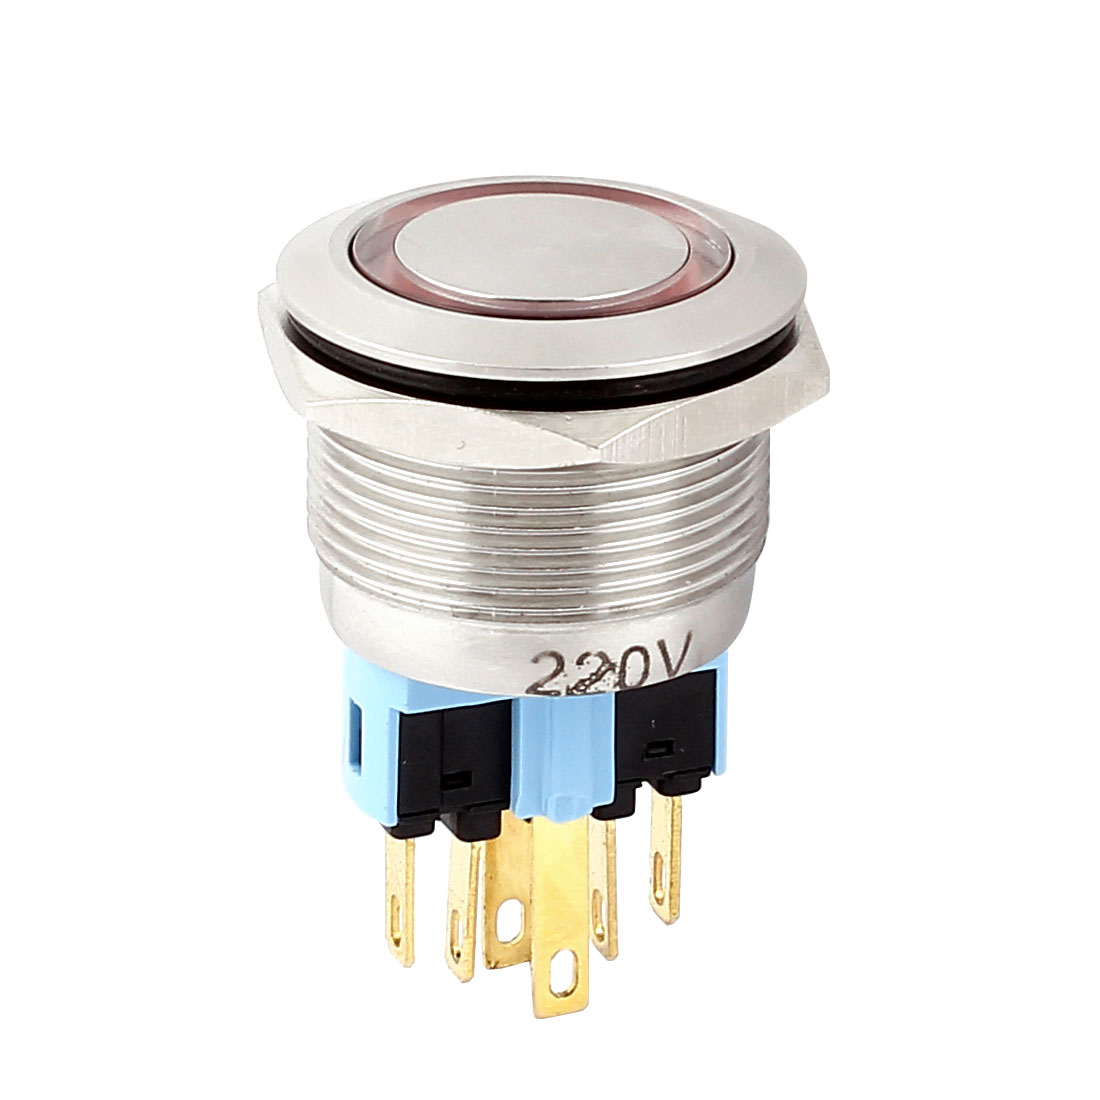 AC 220V 18mm Red LED Light 22mm Mounted Thread 6 Pins DPST NO/NC Momentary Push Button Switch